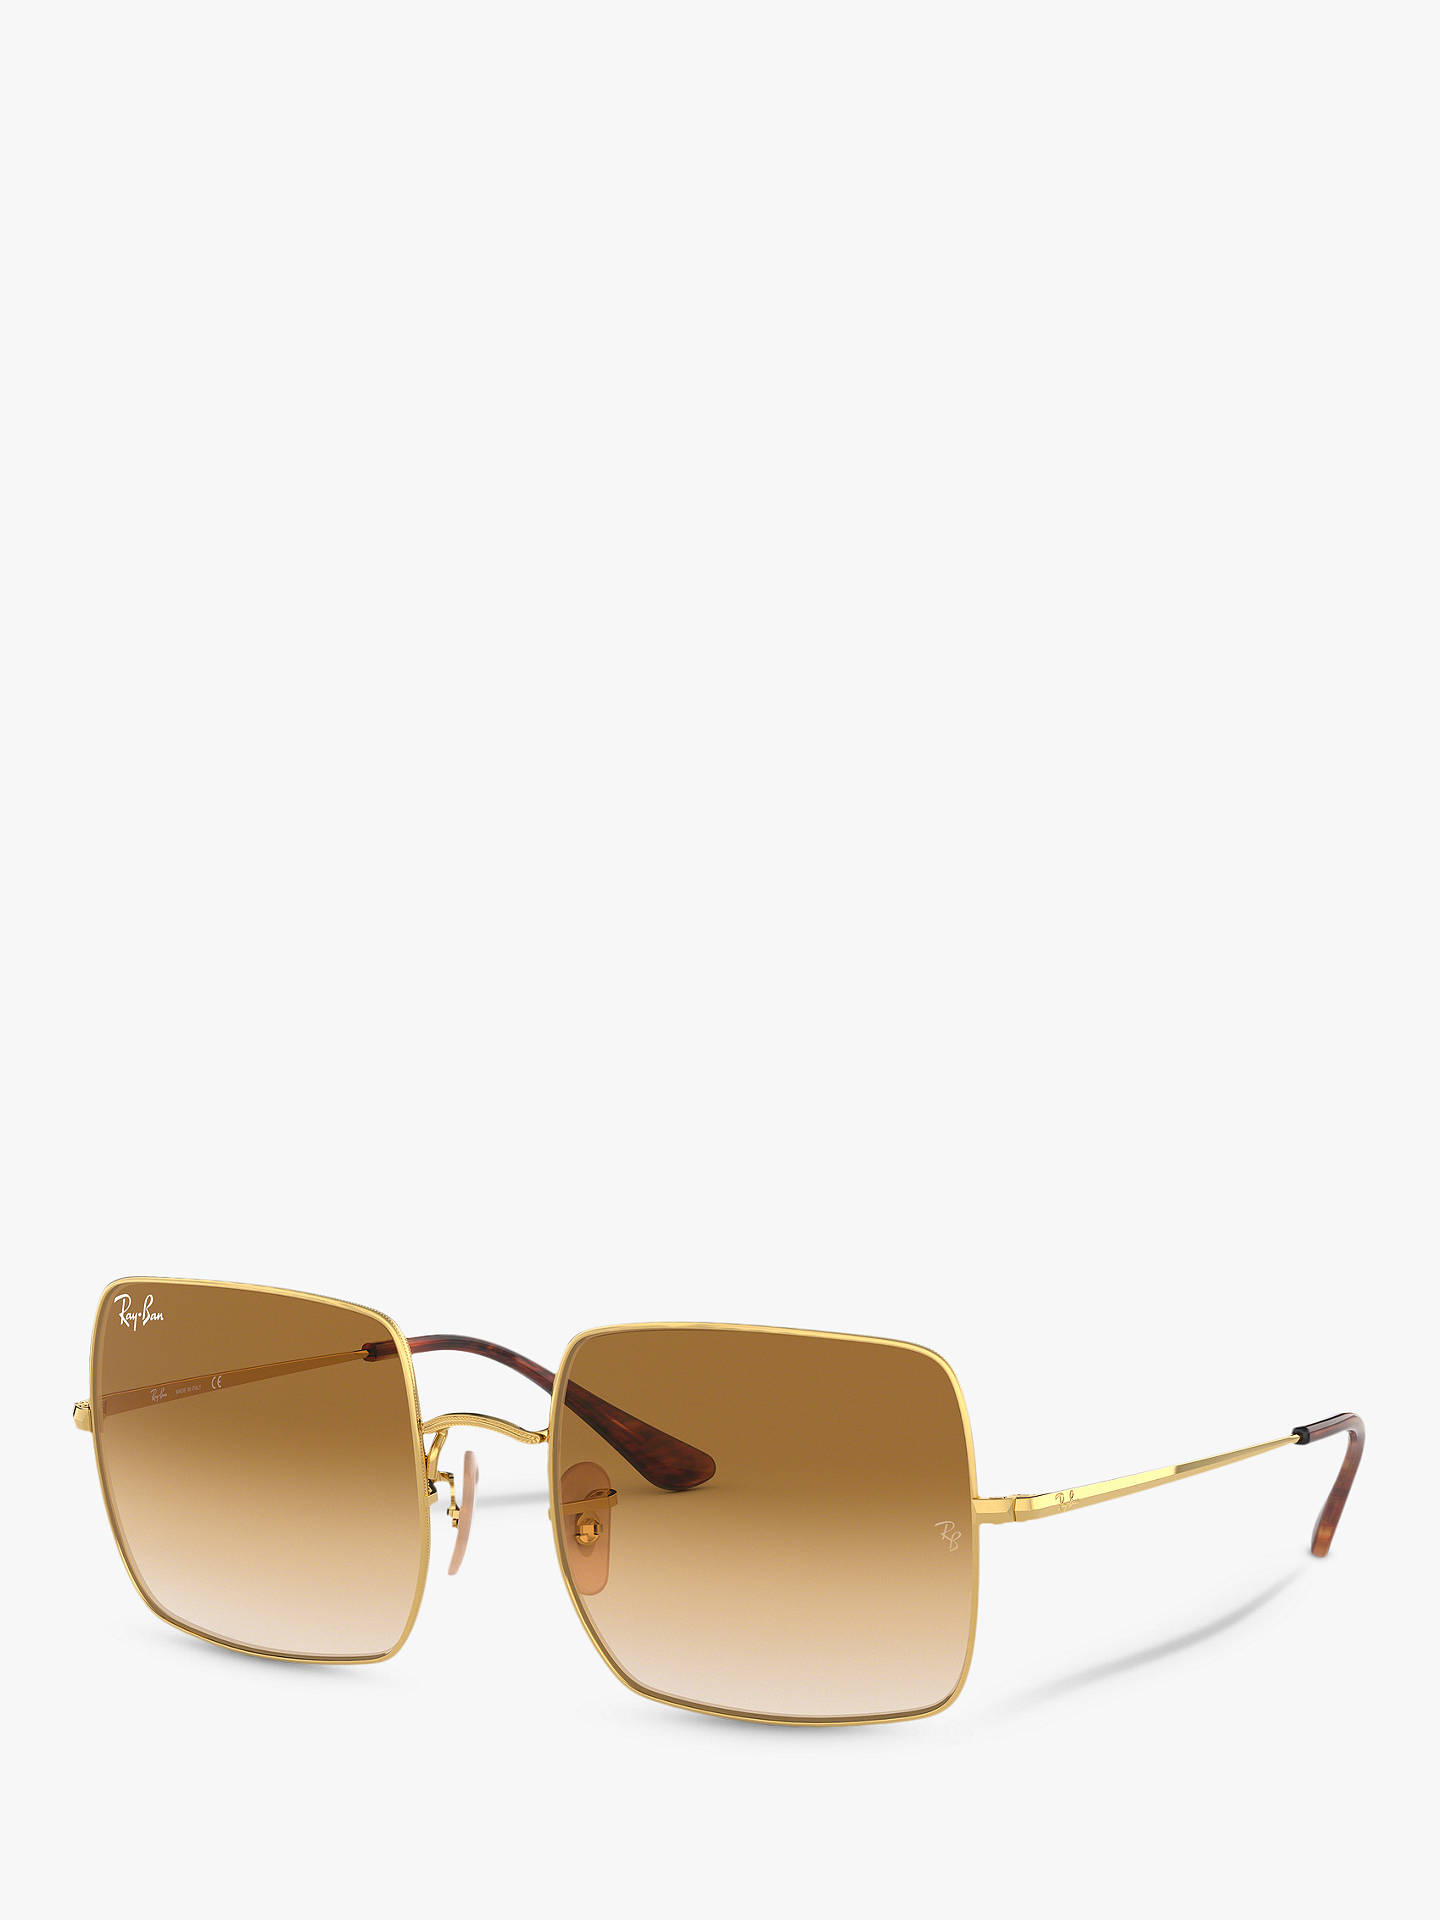 5a09f654a Buy Ray-Ban RB1971 Unisex Square Sunglasses, Gold/Brown Gradient Online at  johnlewis ...